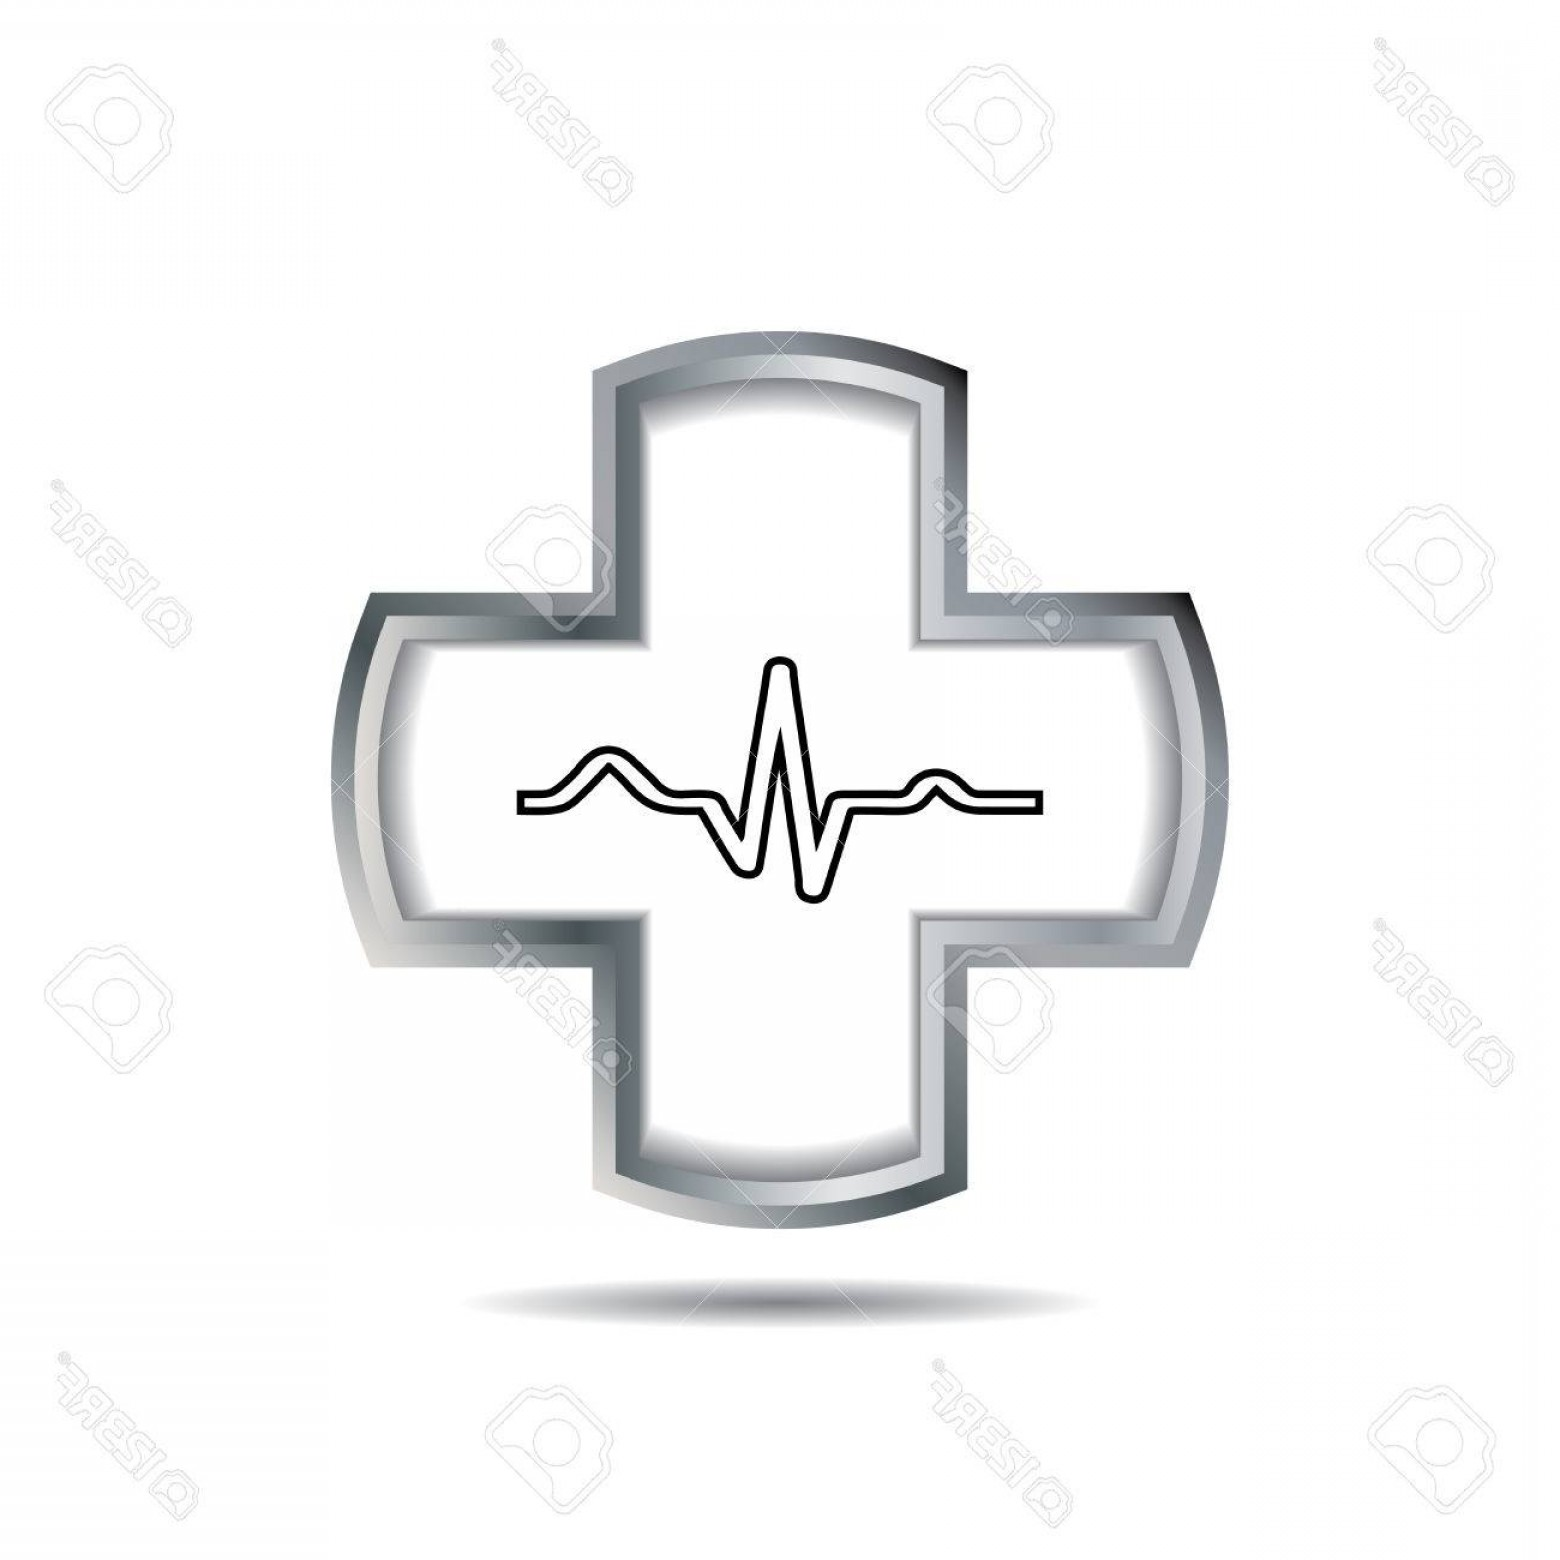 Heart With EKG Line Vector: Photostock Vector Cross With Heart And Ekg Line Vector